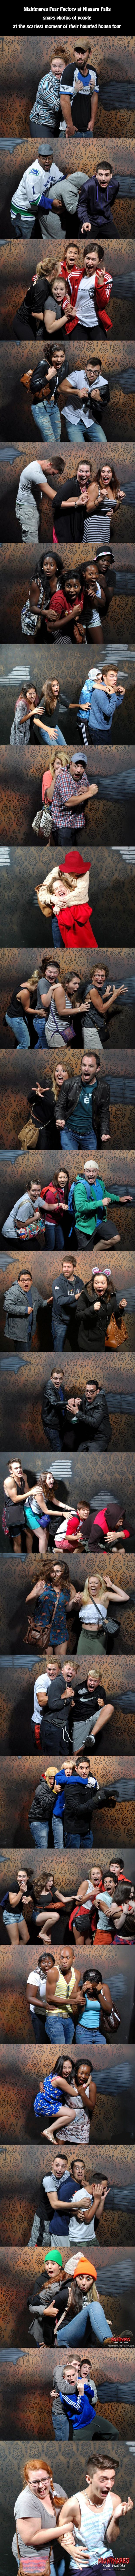 hilarious haunted house reactions ~ LMAO! | from Nightmares Fear Factory @ Niagara Falls, Canada